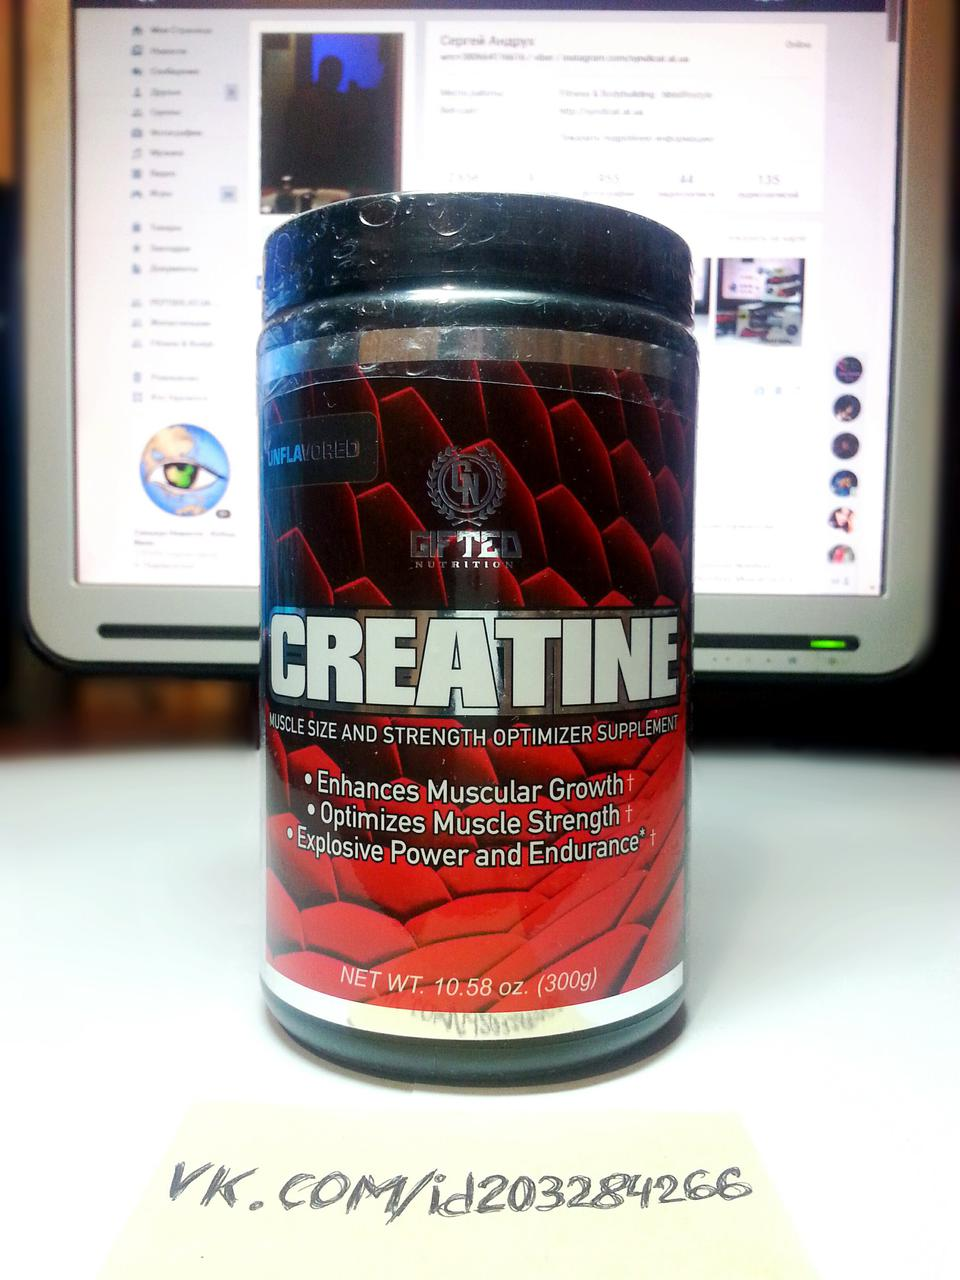 Креатин моногідрат, Gifted Nutrition Pure Creatine 300г